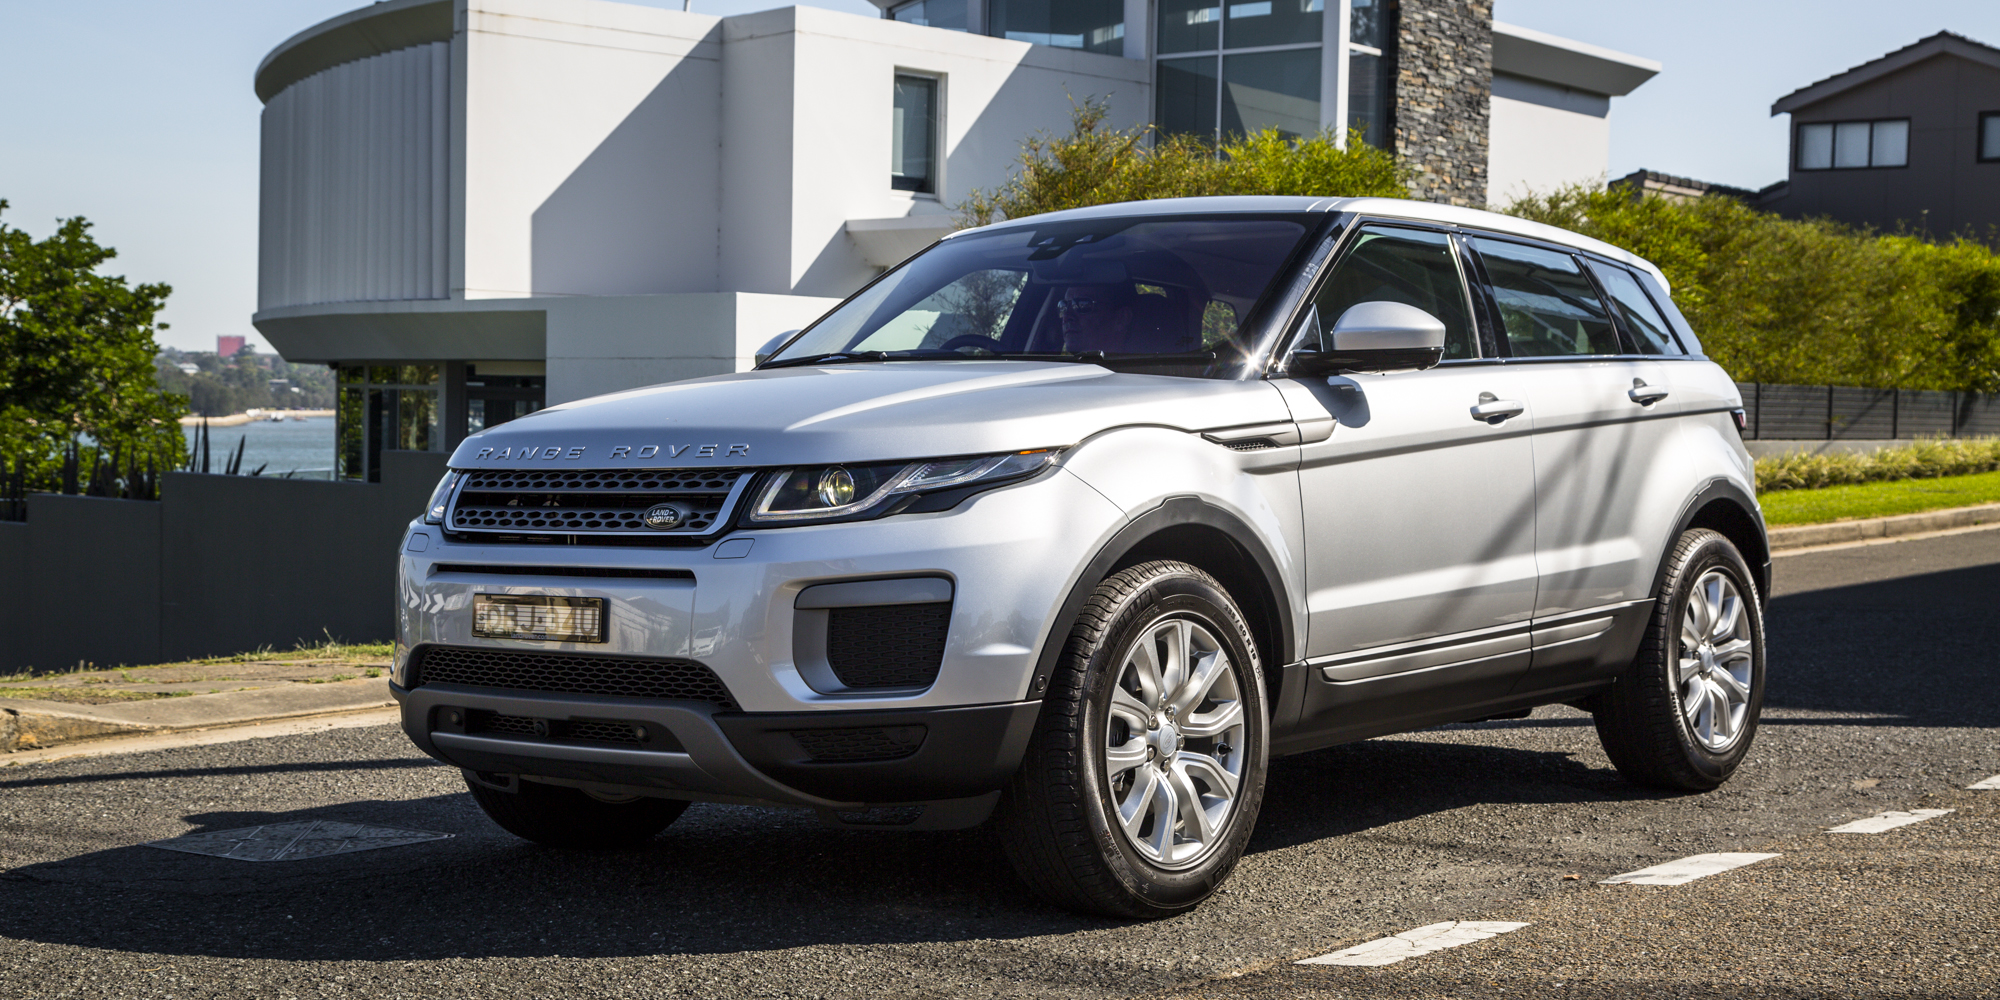 2016 range rover evoque review caradvice. Black Bedroom Furniture Sets. Home Design Ideas